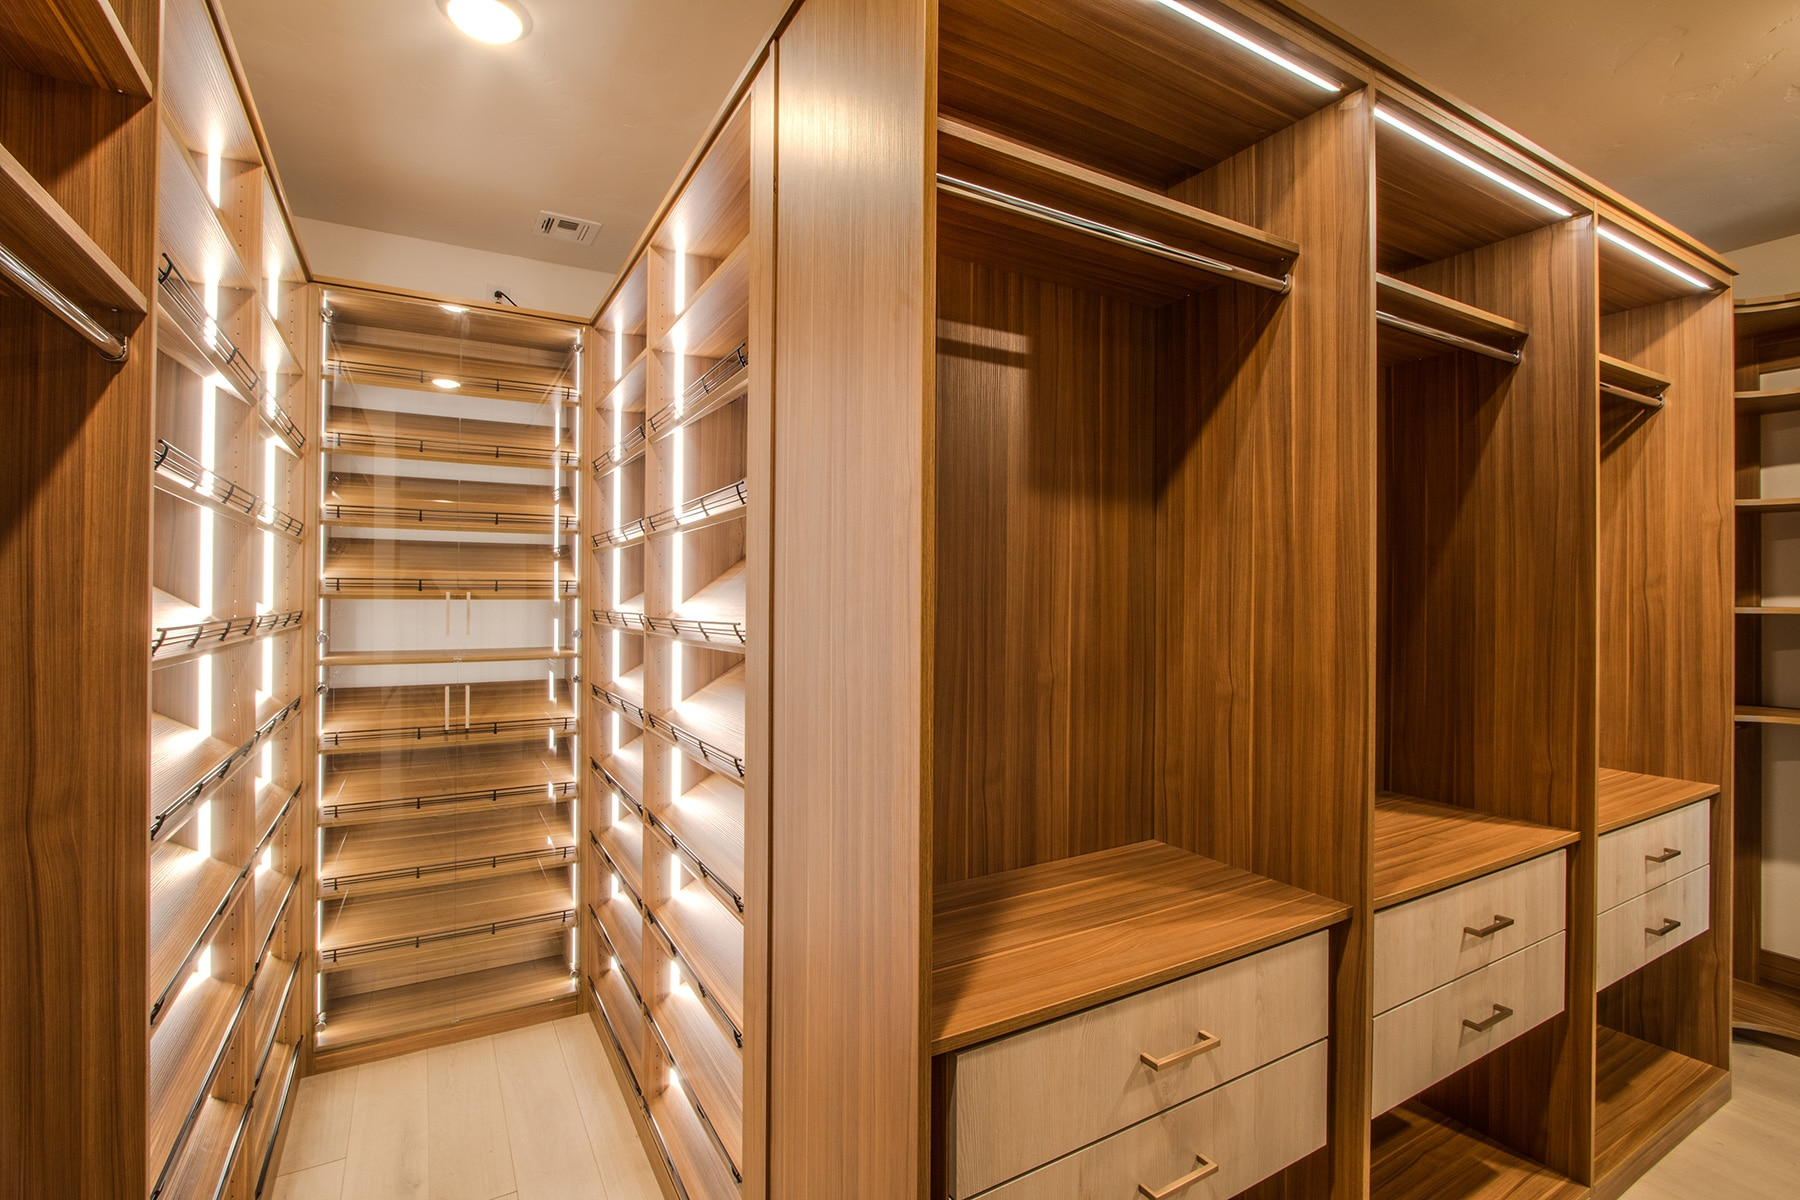 Building A Luxury Walk In Closet For A High End Summerlin Builder Home In Las Vegas